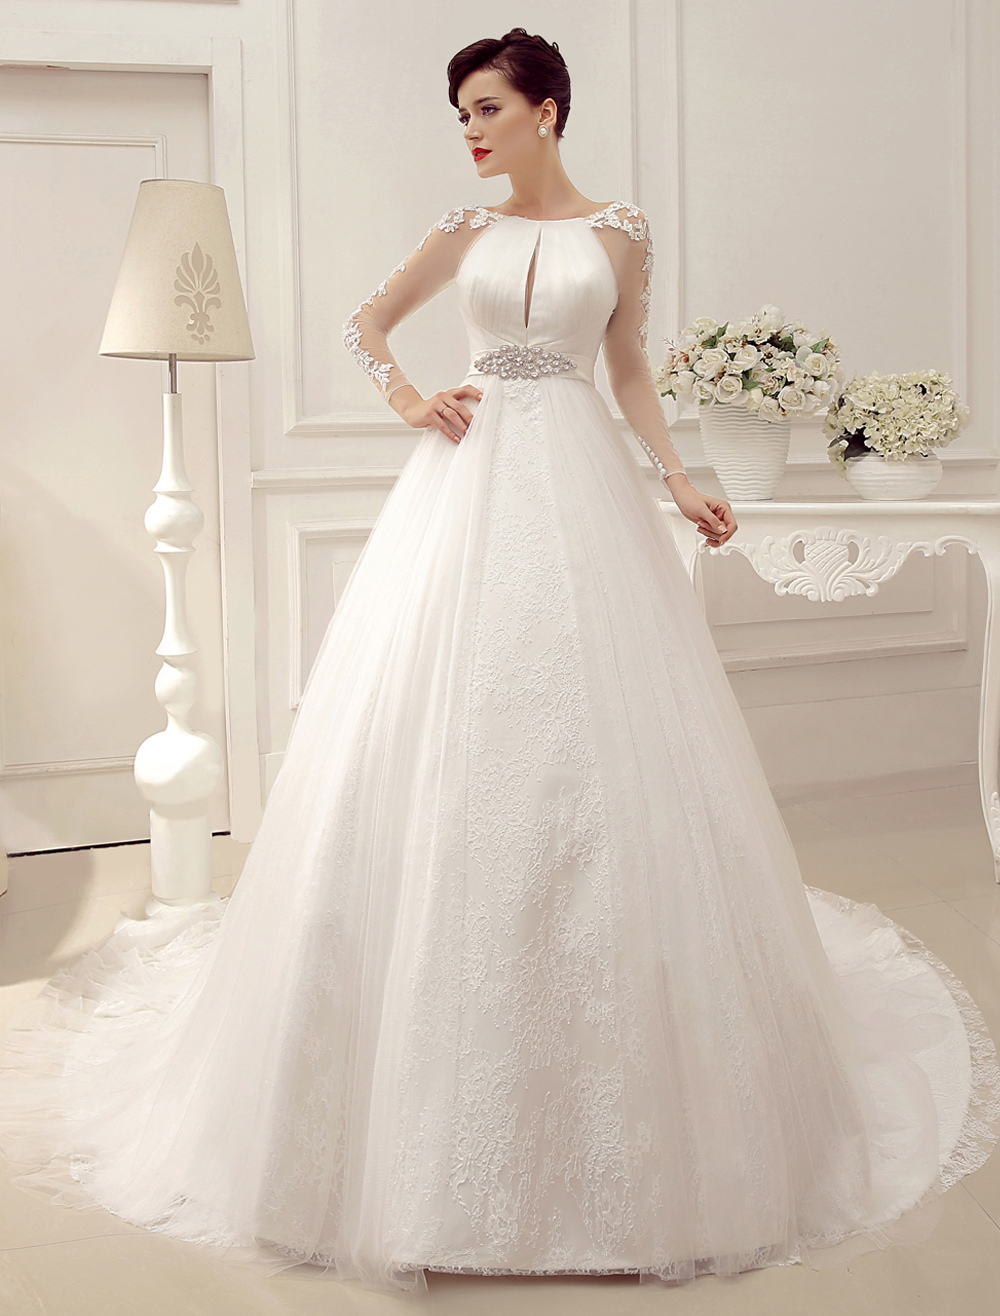 chapel train ball gown wedding dress with lace sleeve milanoo p train wedding dress Chapel Train Ball Gown Wedding Dress with Lace Sleeve Milanoo Milanoo com